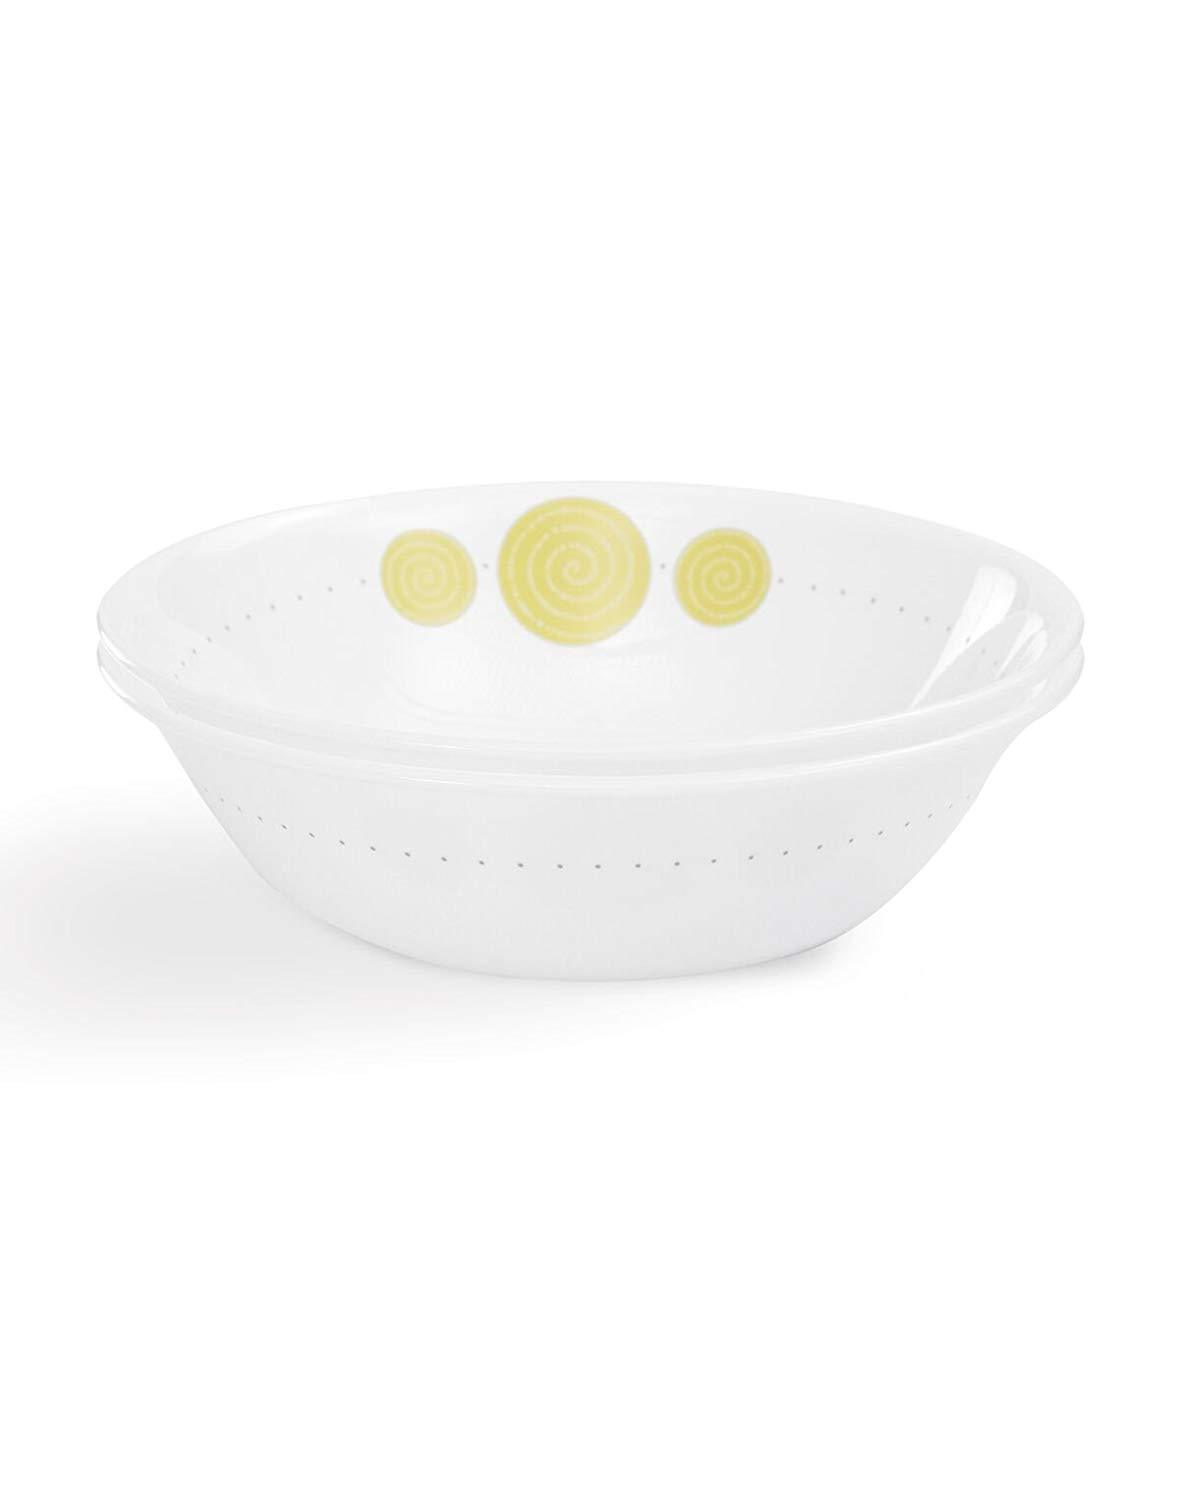 CORELLE SPIRAL SERVING BOWL